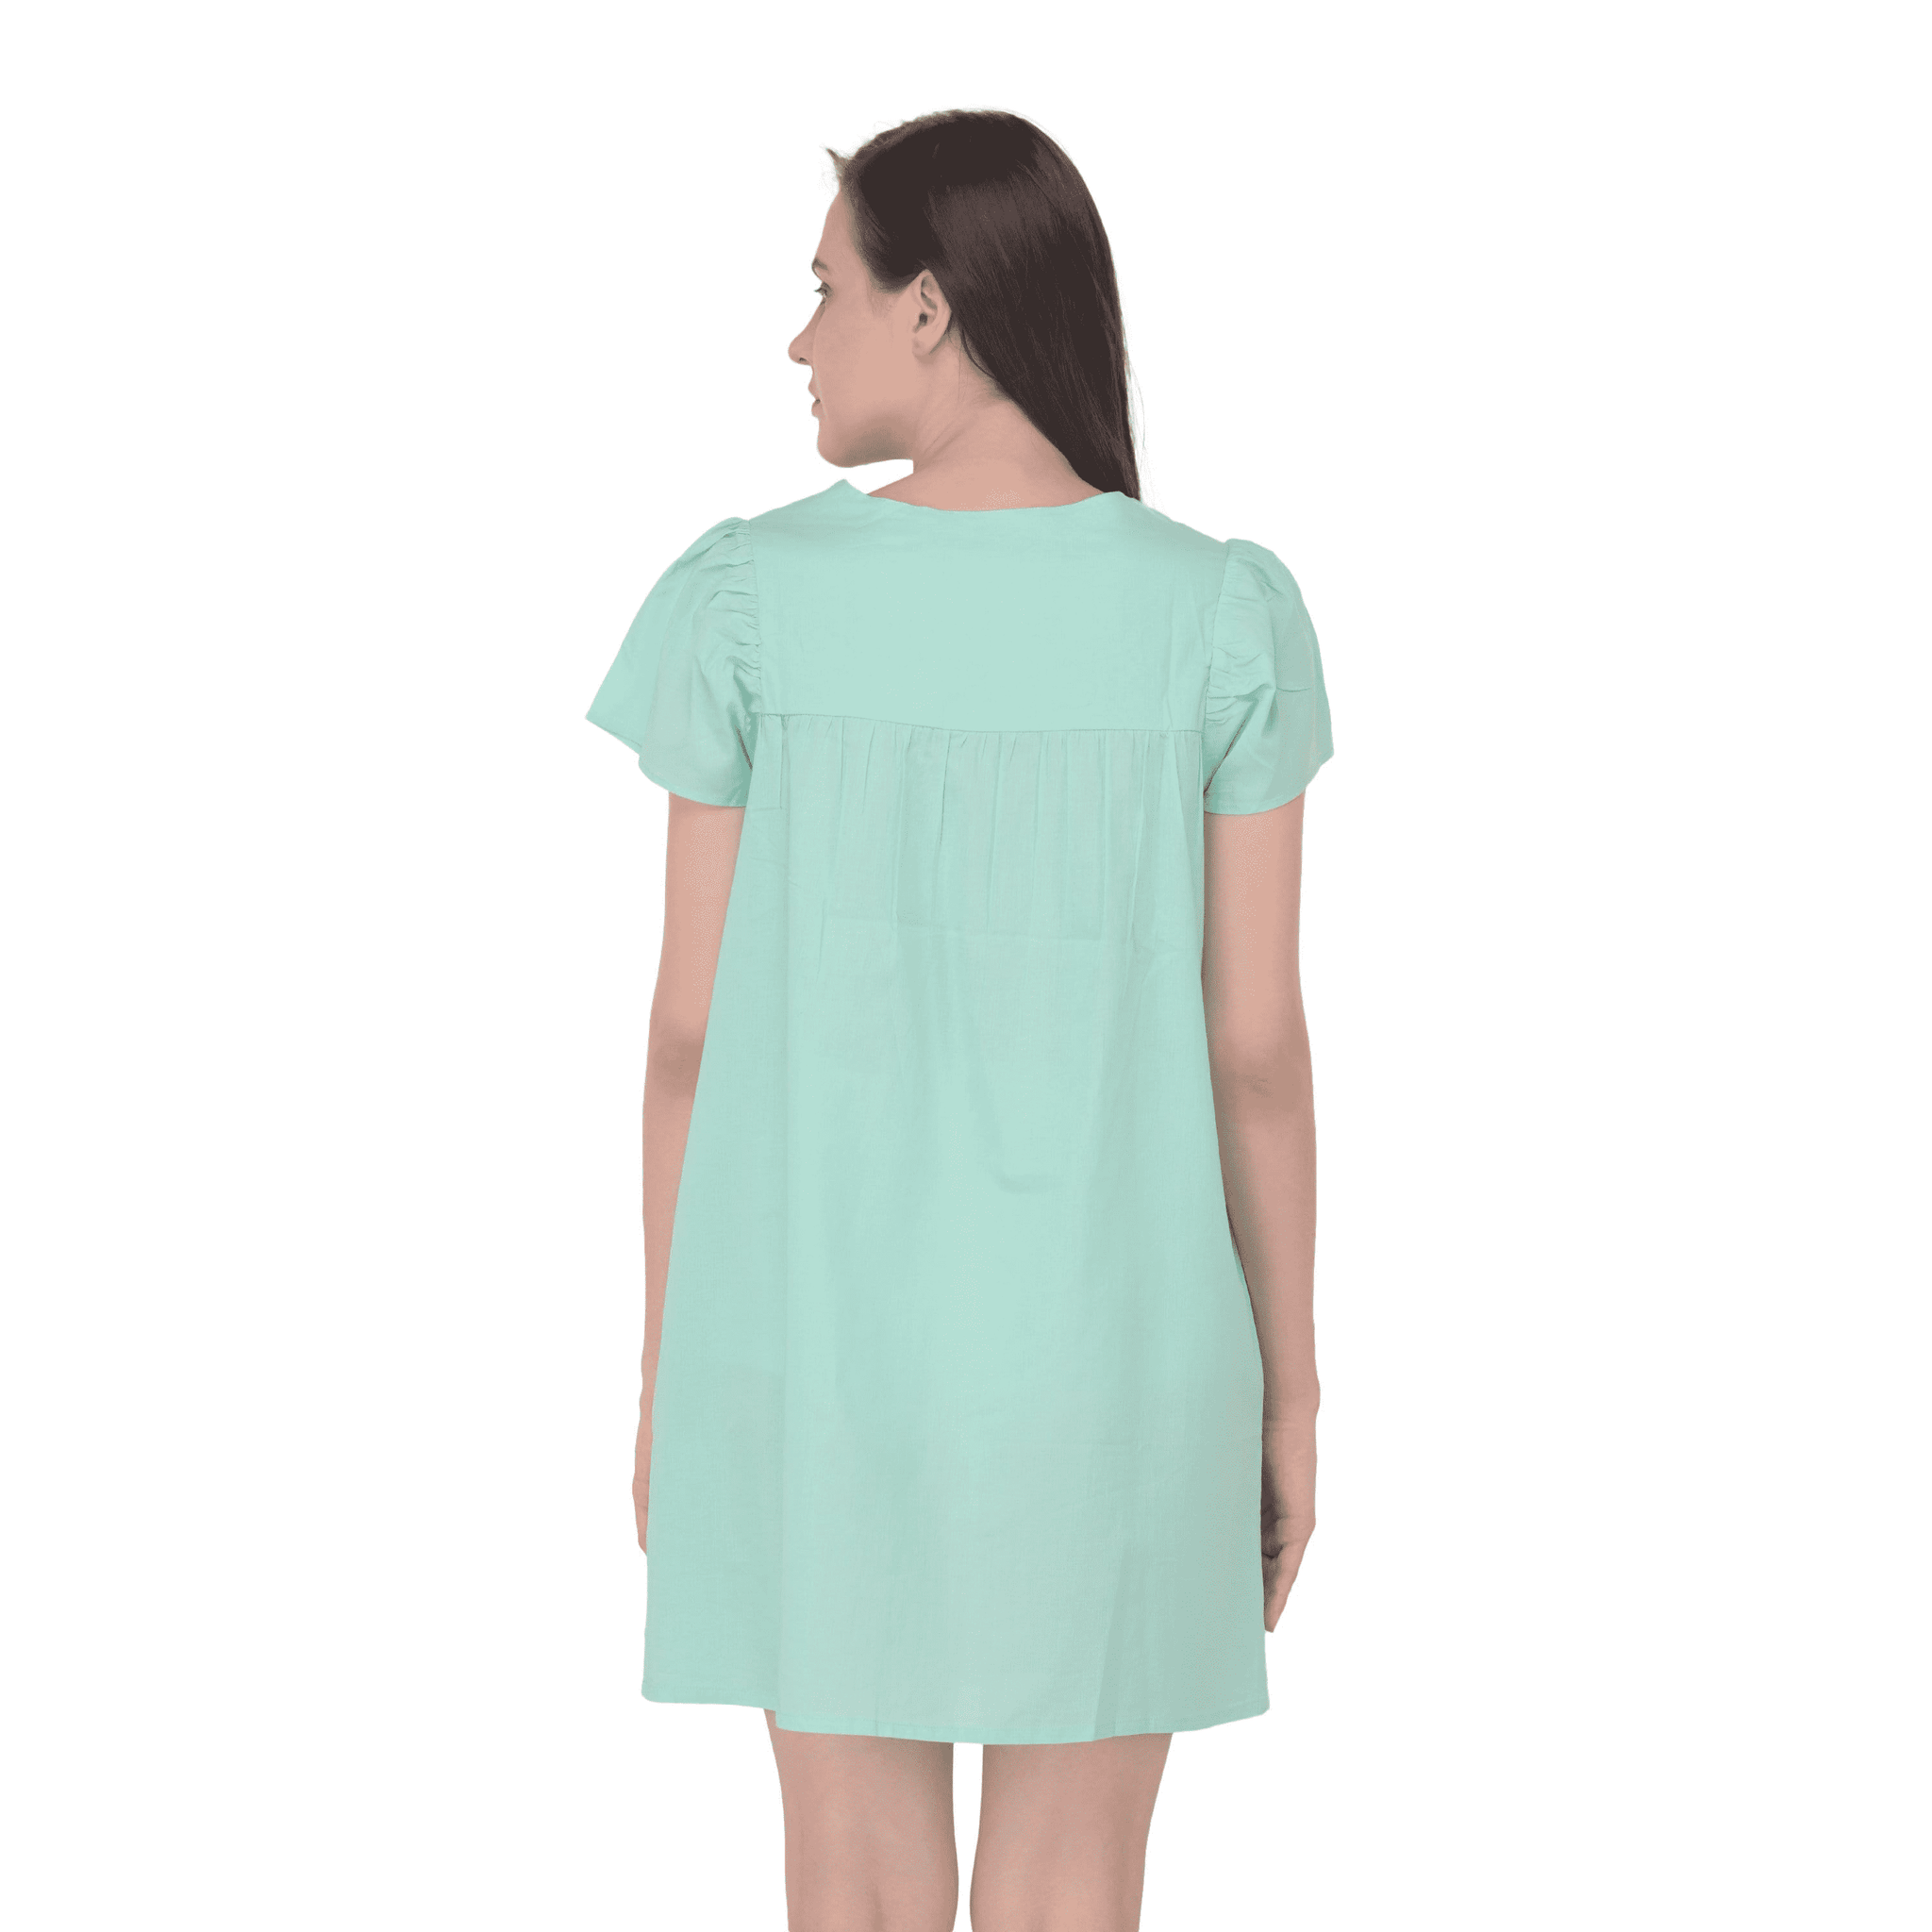 Lace Detail Tunic Green - NIXX Clothing